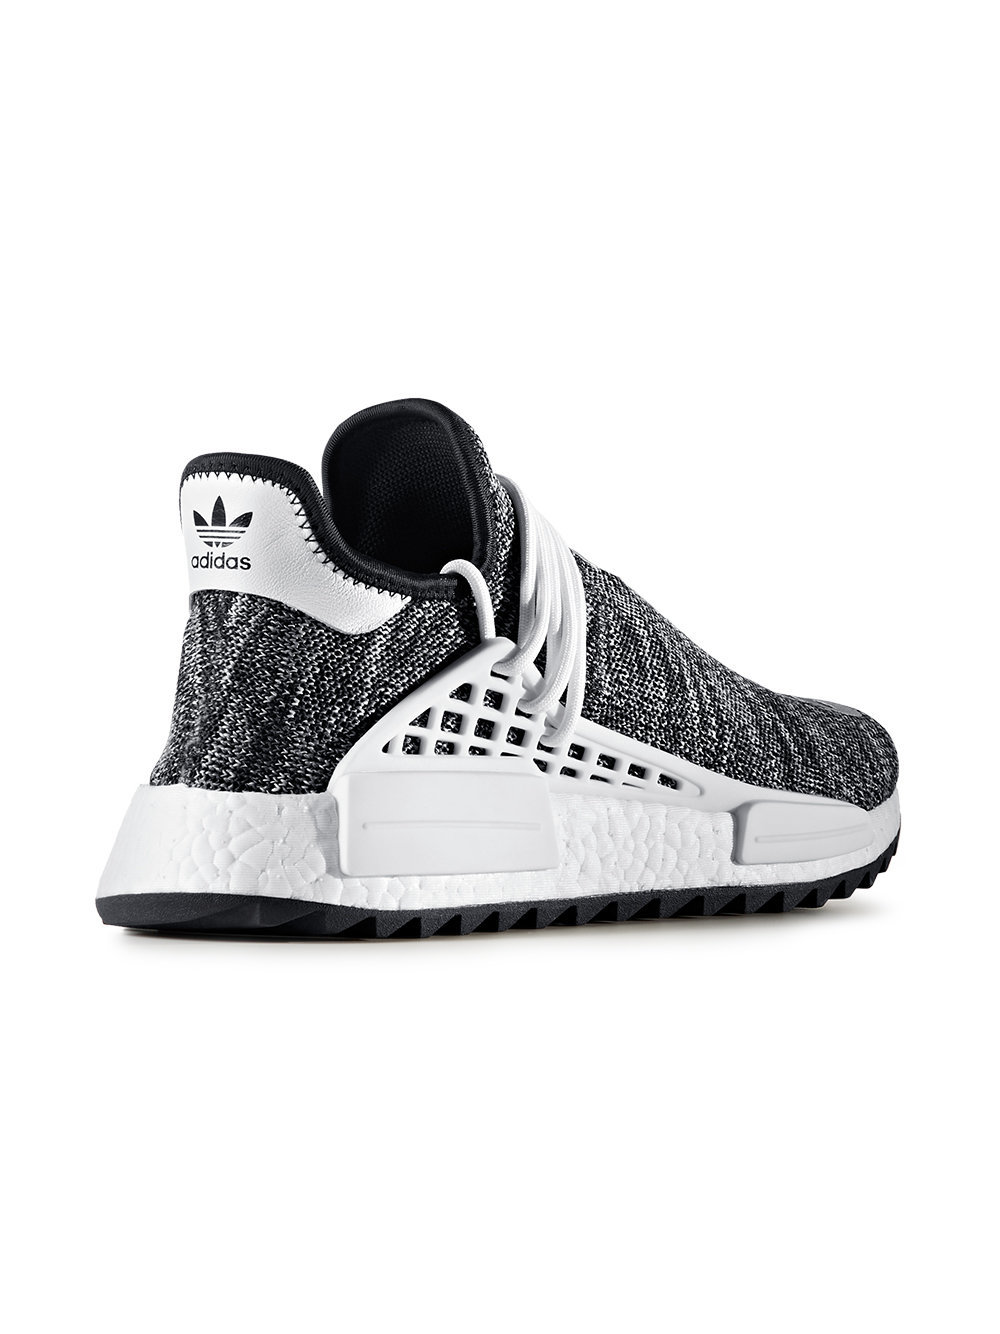 2c7b5ee14 ... adidas X Pharrell Williams Human Race Nmd Cloud Mood Sneakers  Unavailable ...